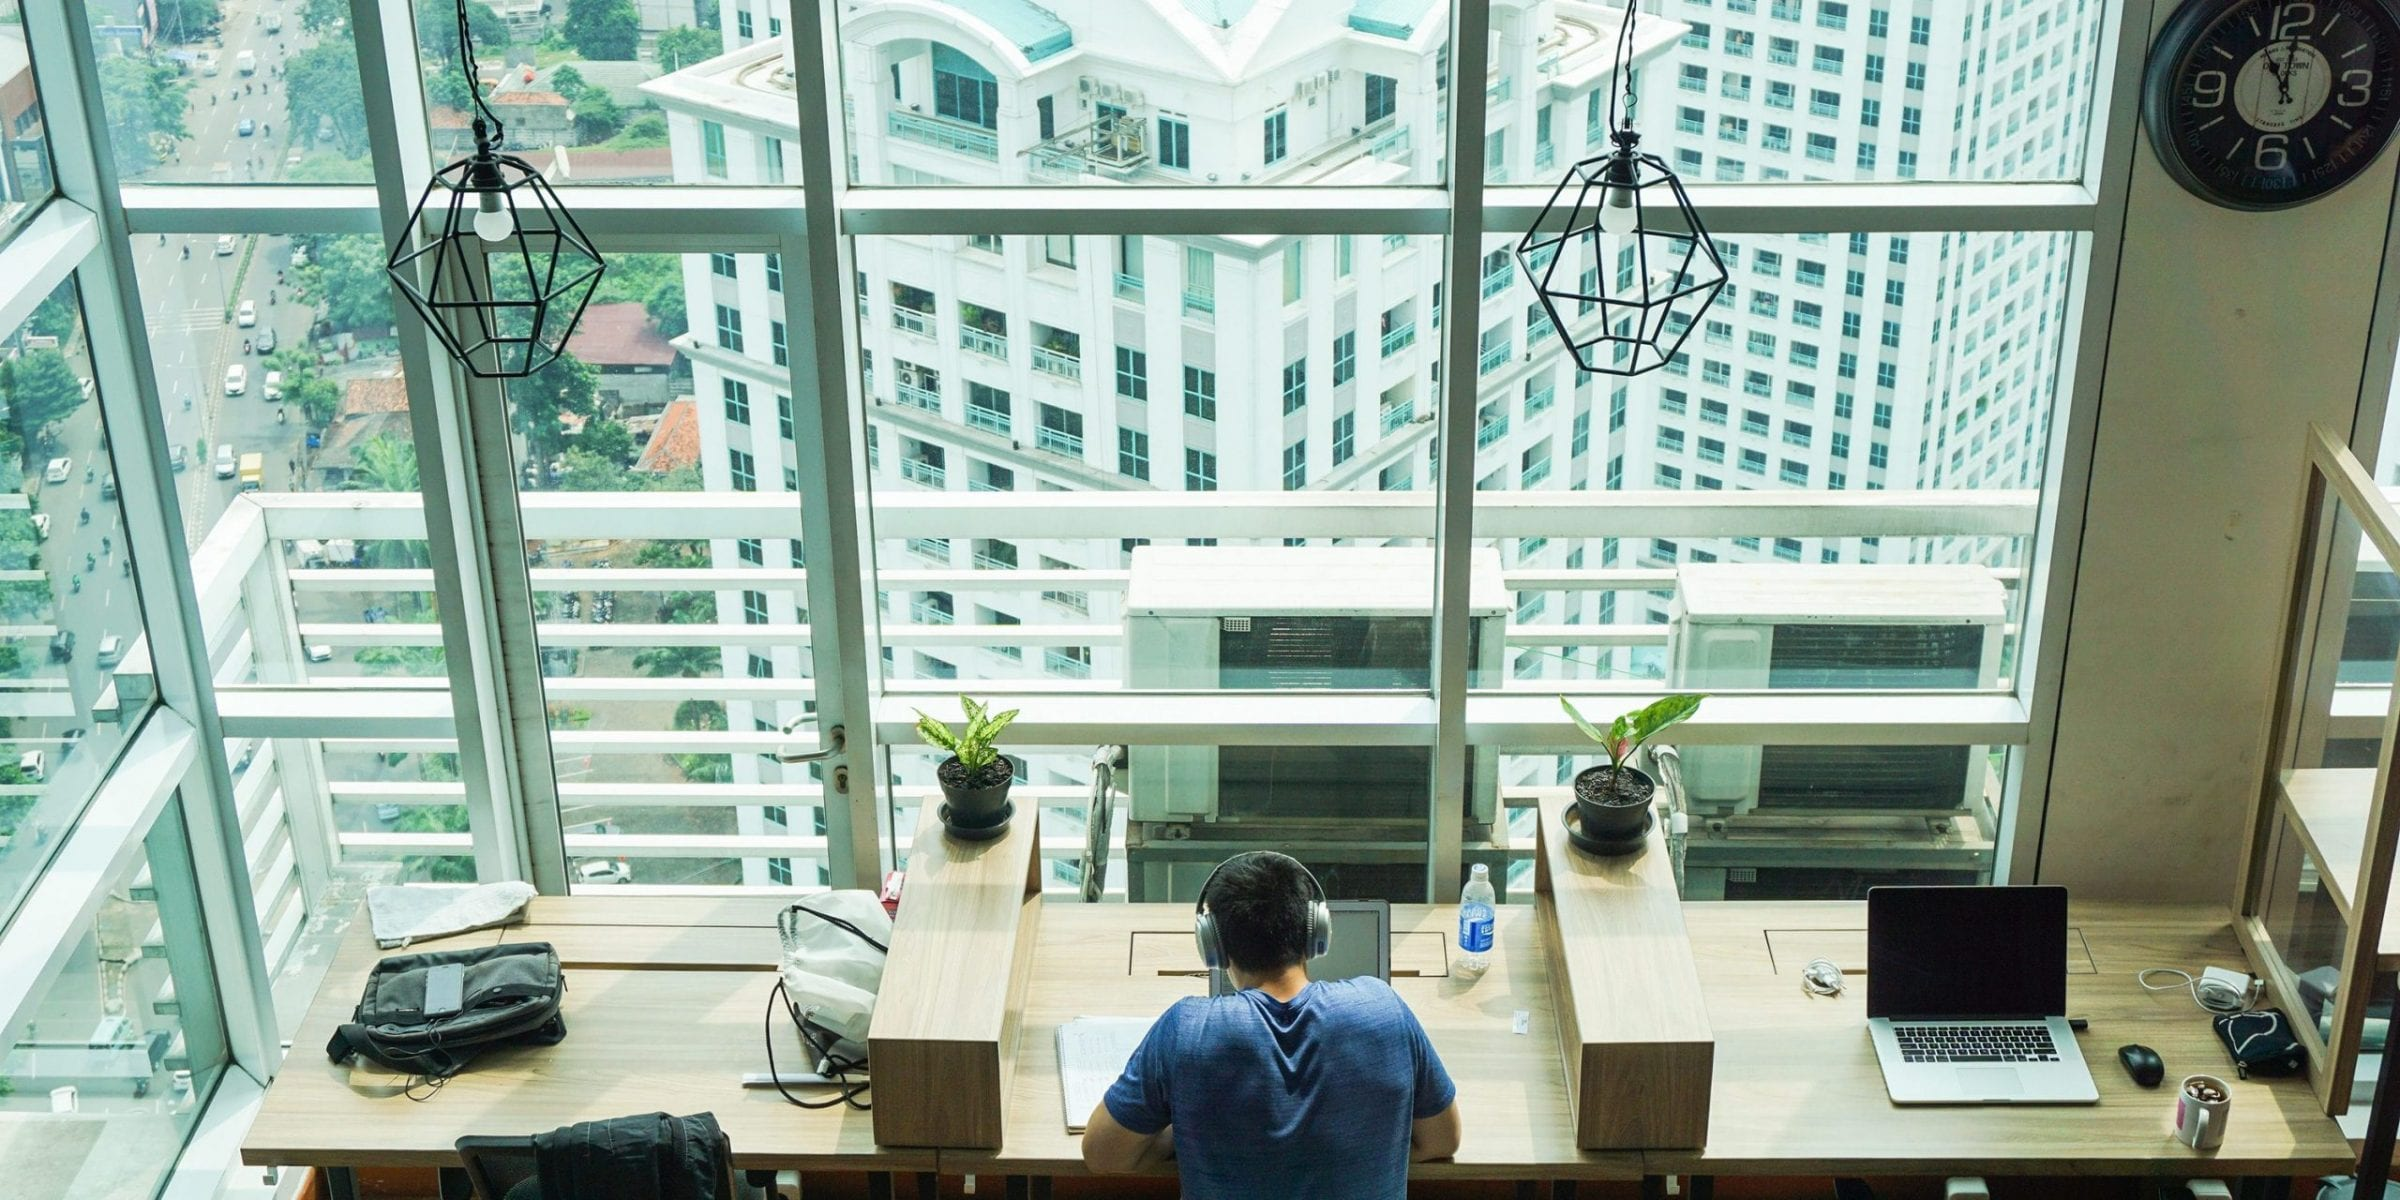 4 Step Office Seating Plan Guide to Maximize Productivity